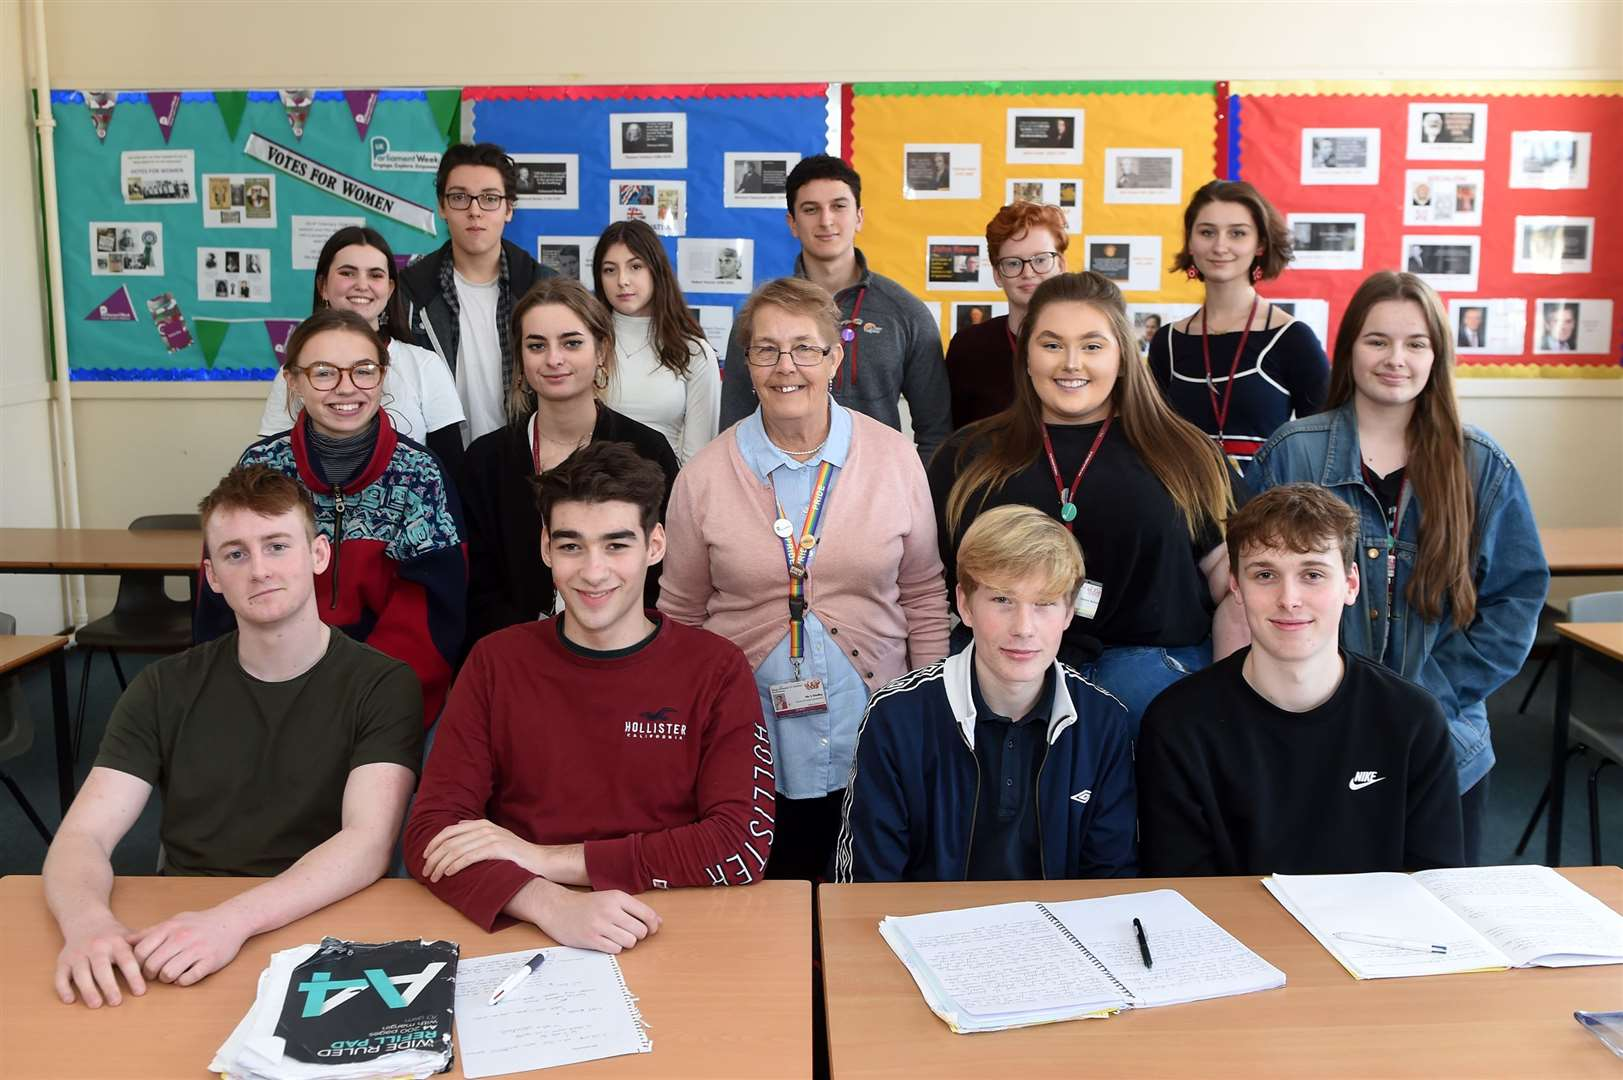 Sharon Shelley government and politics teacher at King Edward VI School with her students. Picture by Mecha Morton.